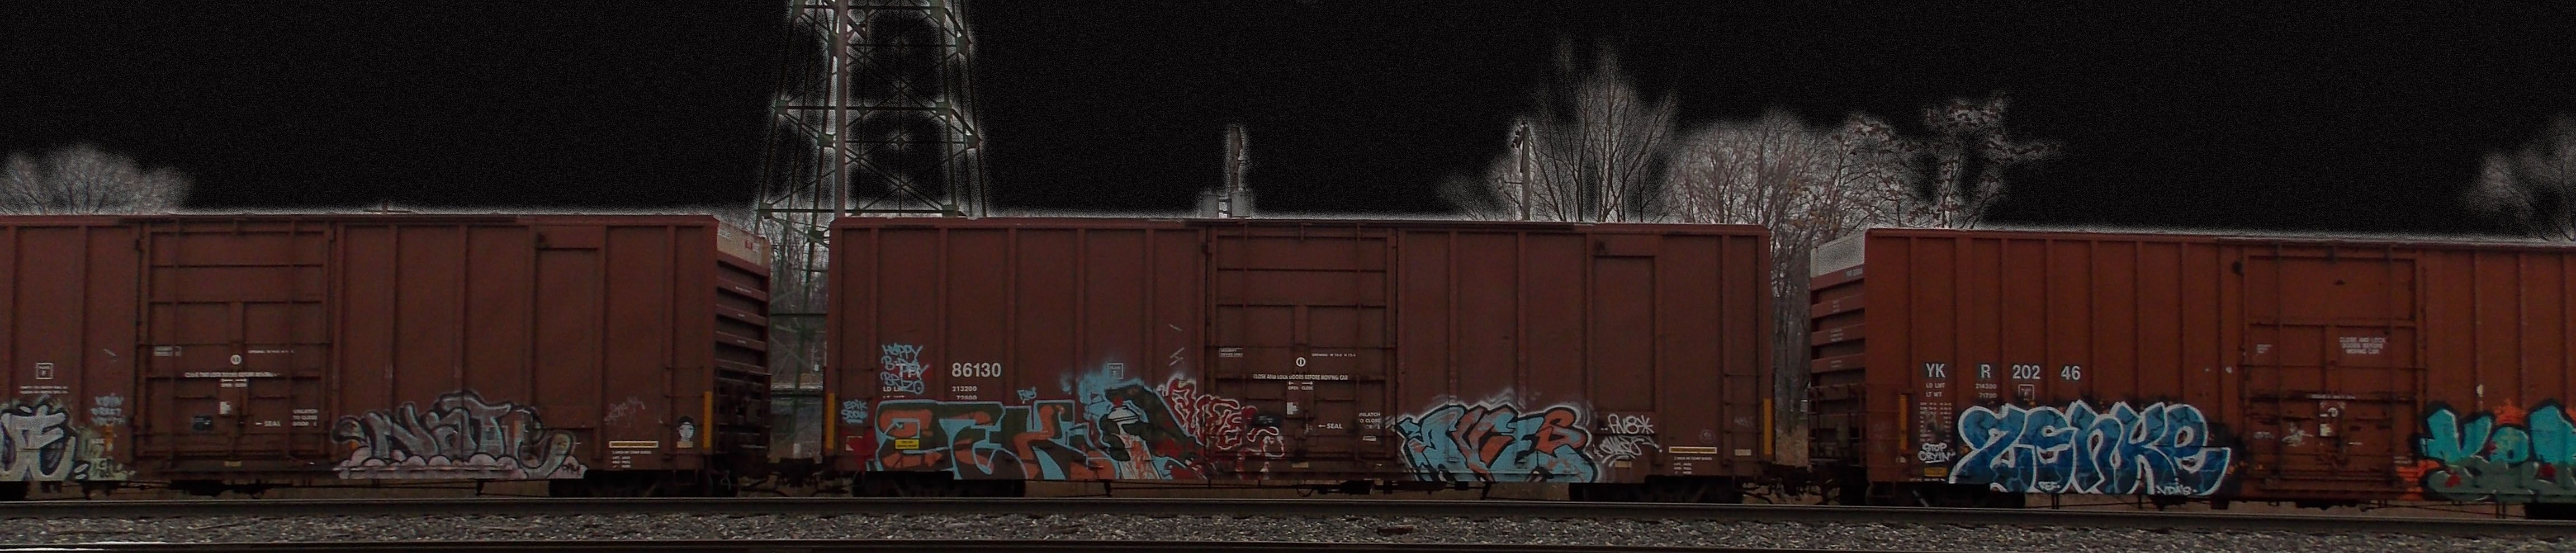 Train cars in Bettendorf, Iowa